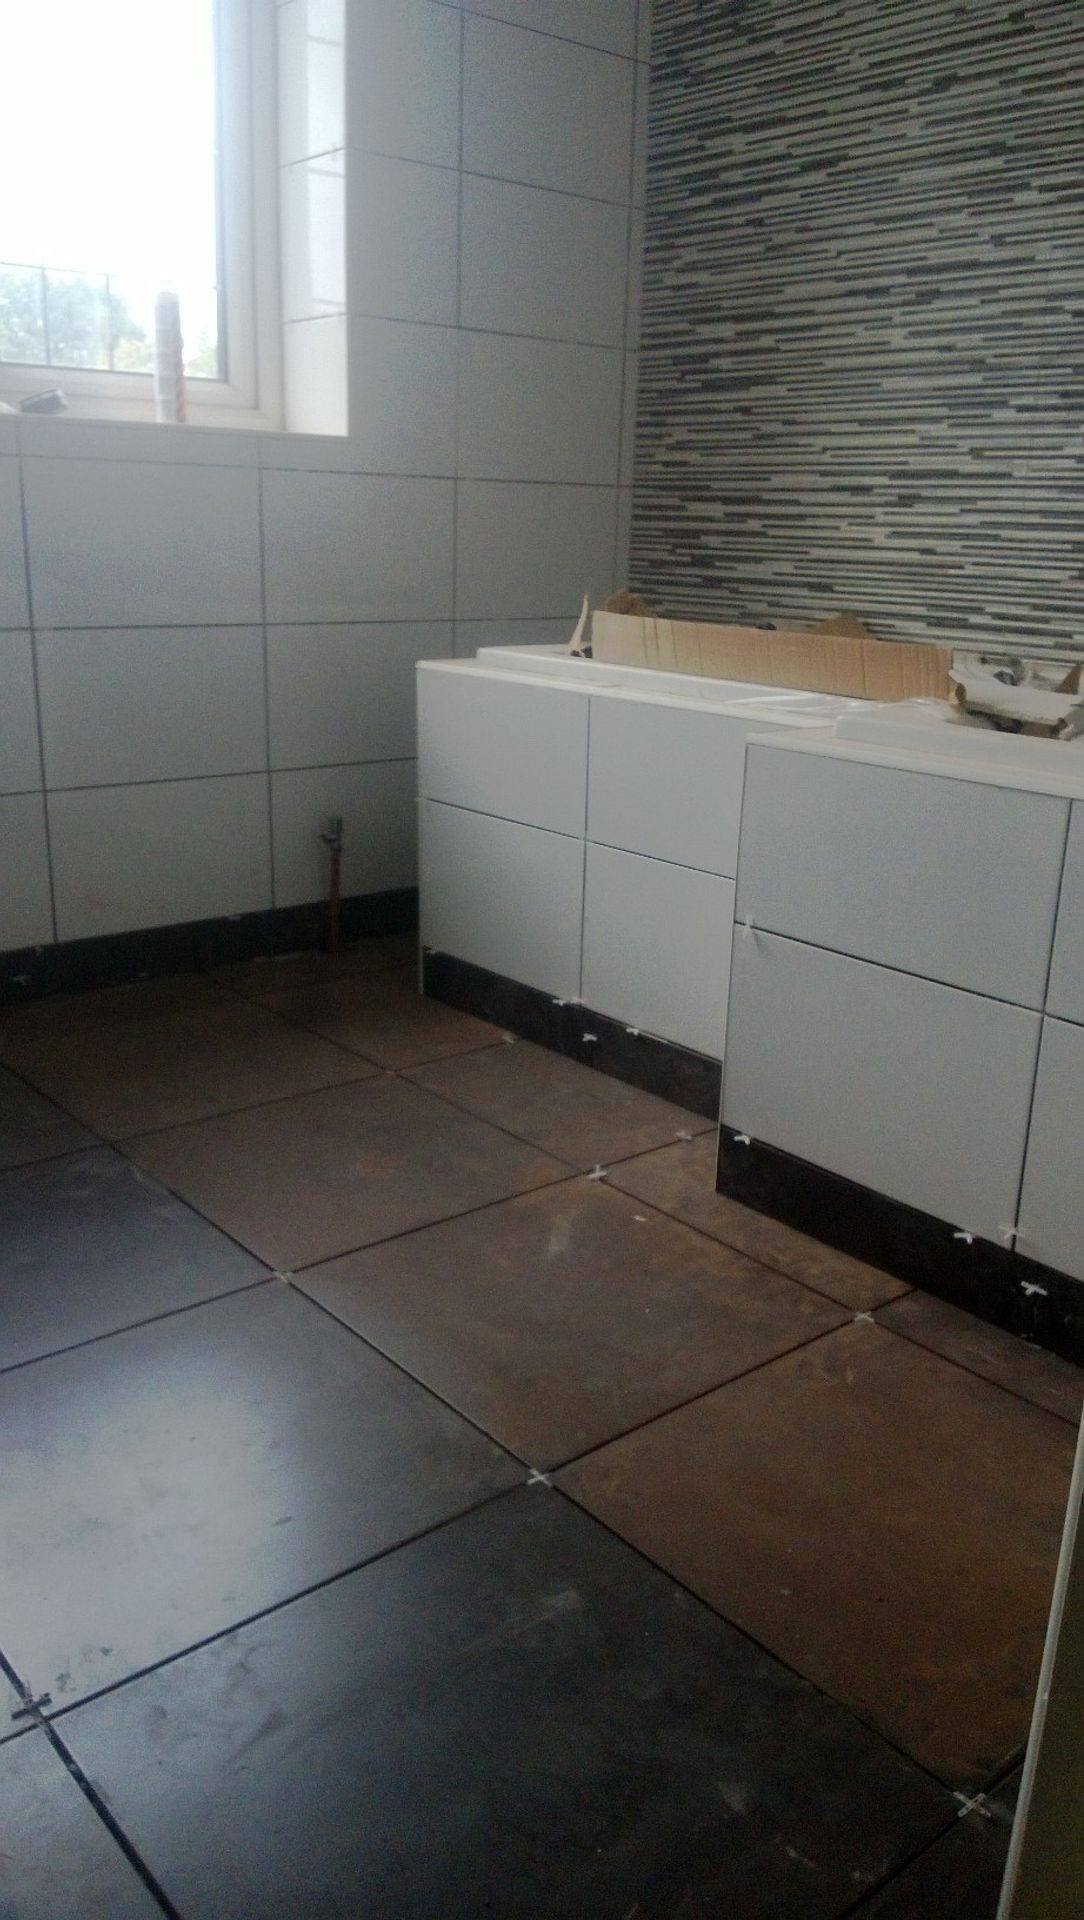 Bathroom fully tiled and cement board subfloor used.